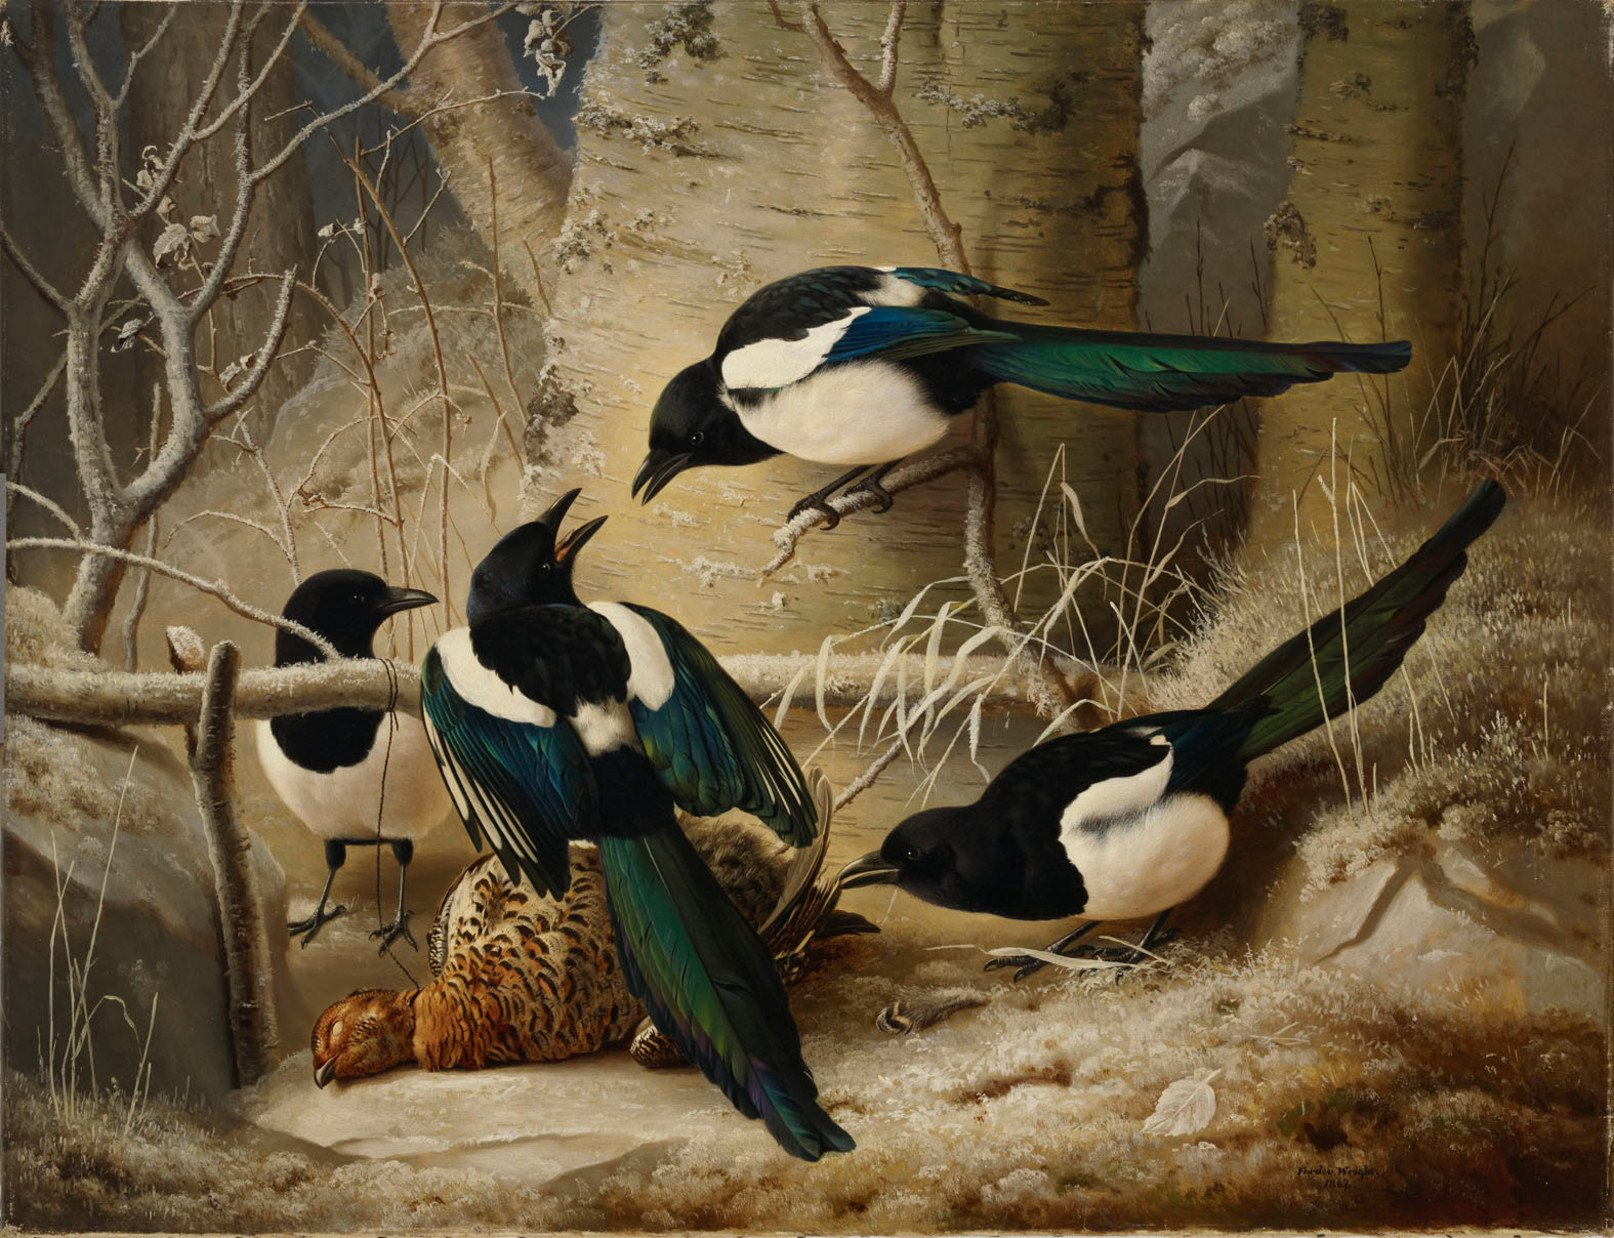 Ferdinand_von_Wright_-_Magpies_round_a_Dead_Woodgrouse_-_A_I_62_-_Finnish_National_Gallery